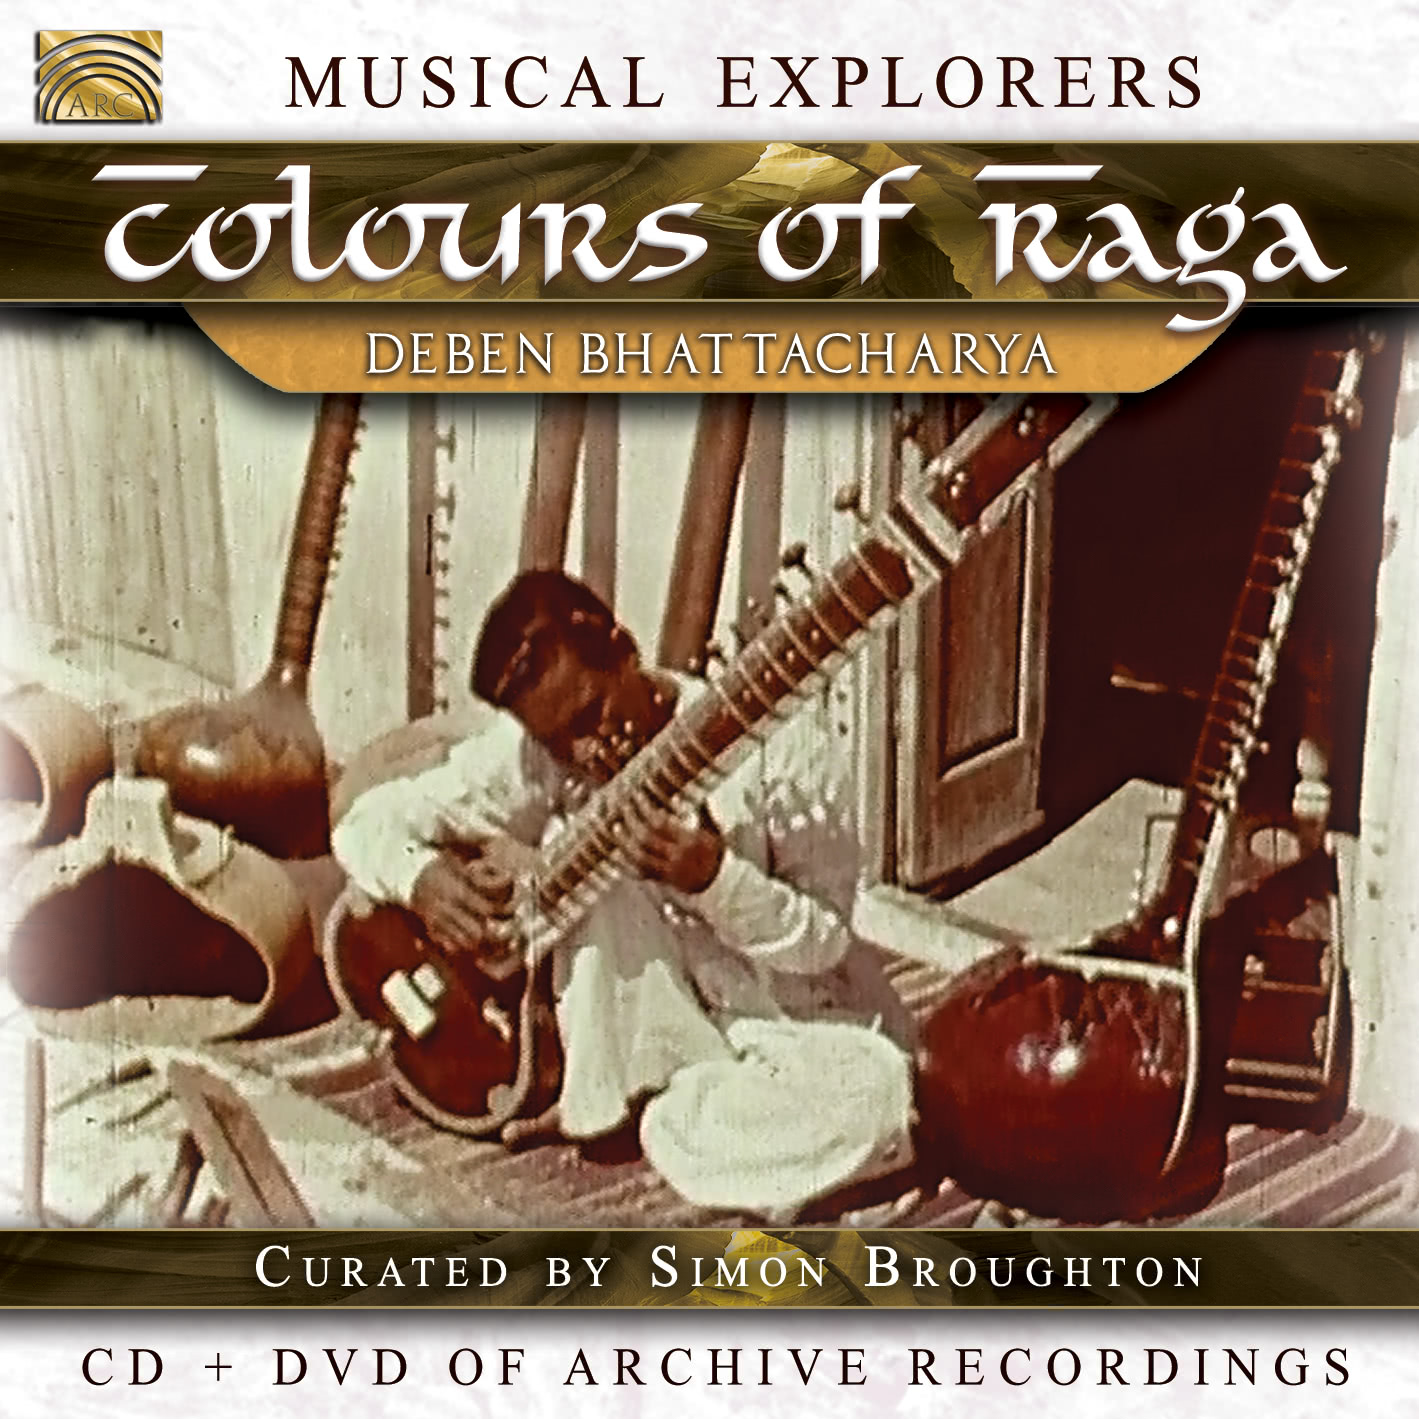 EUCD2730 Musical Explorers - Colours Of Raga